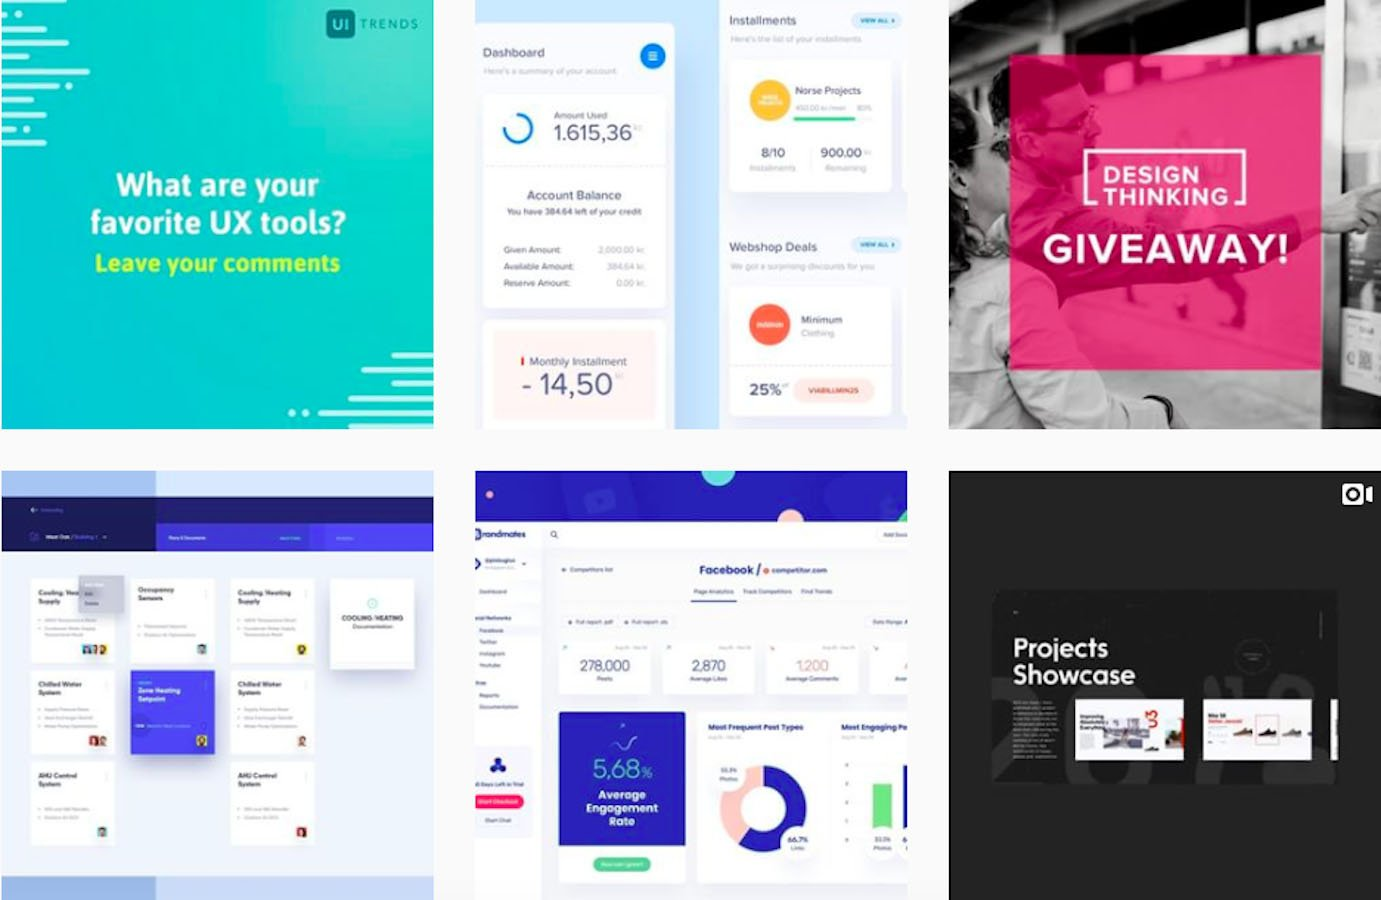 Web Design Inspiration: 110+ Accounts On Instagram and 10+ Best UX & Web Design Books in 2020 - uitrends